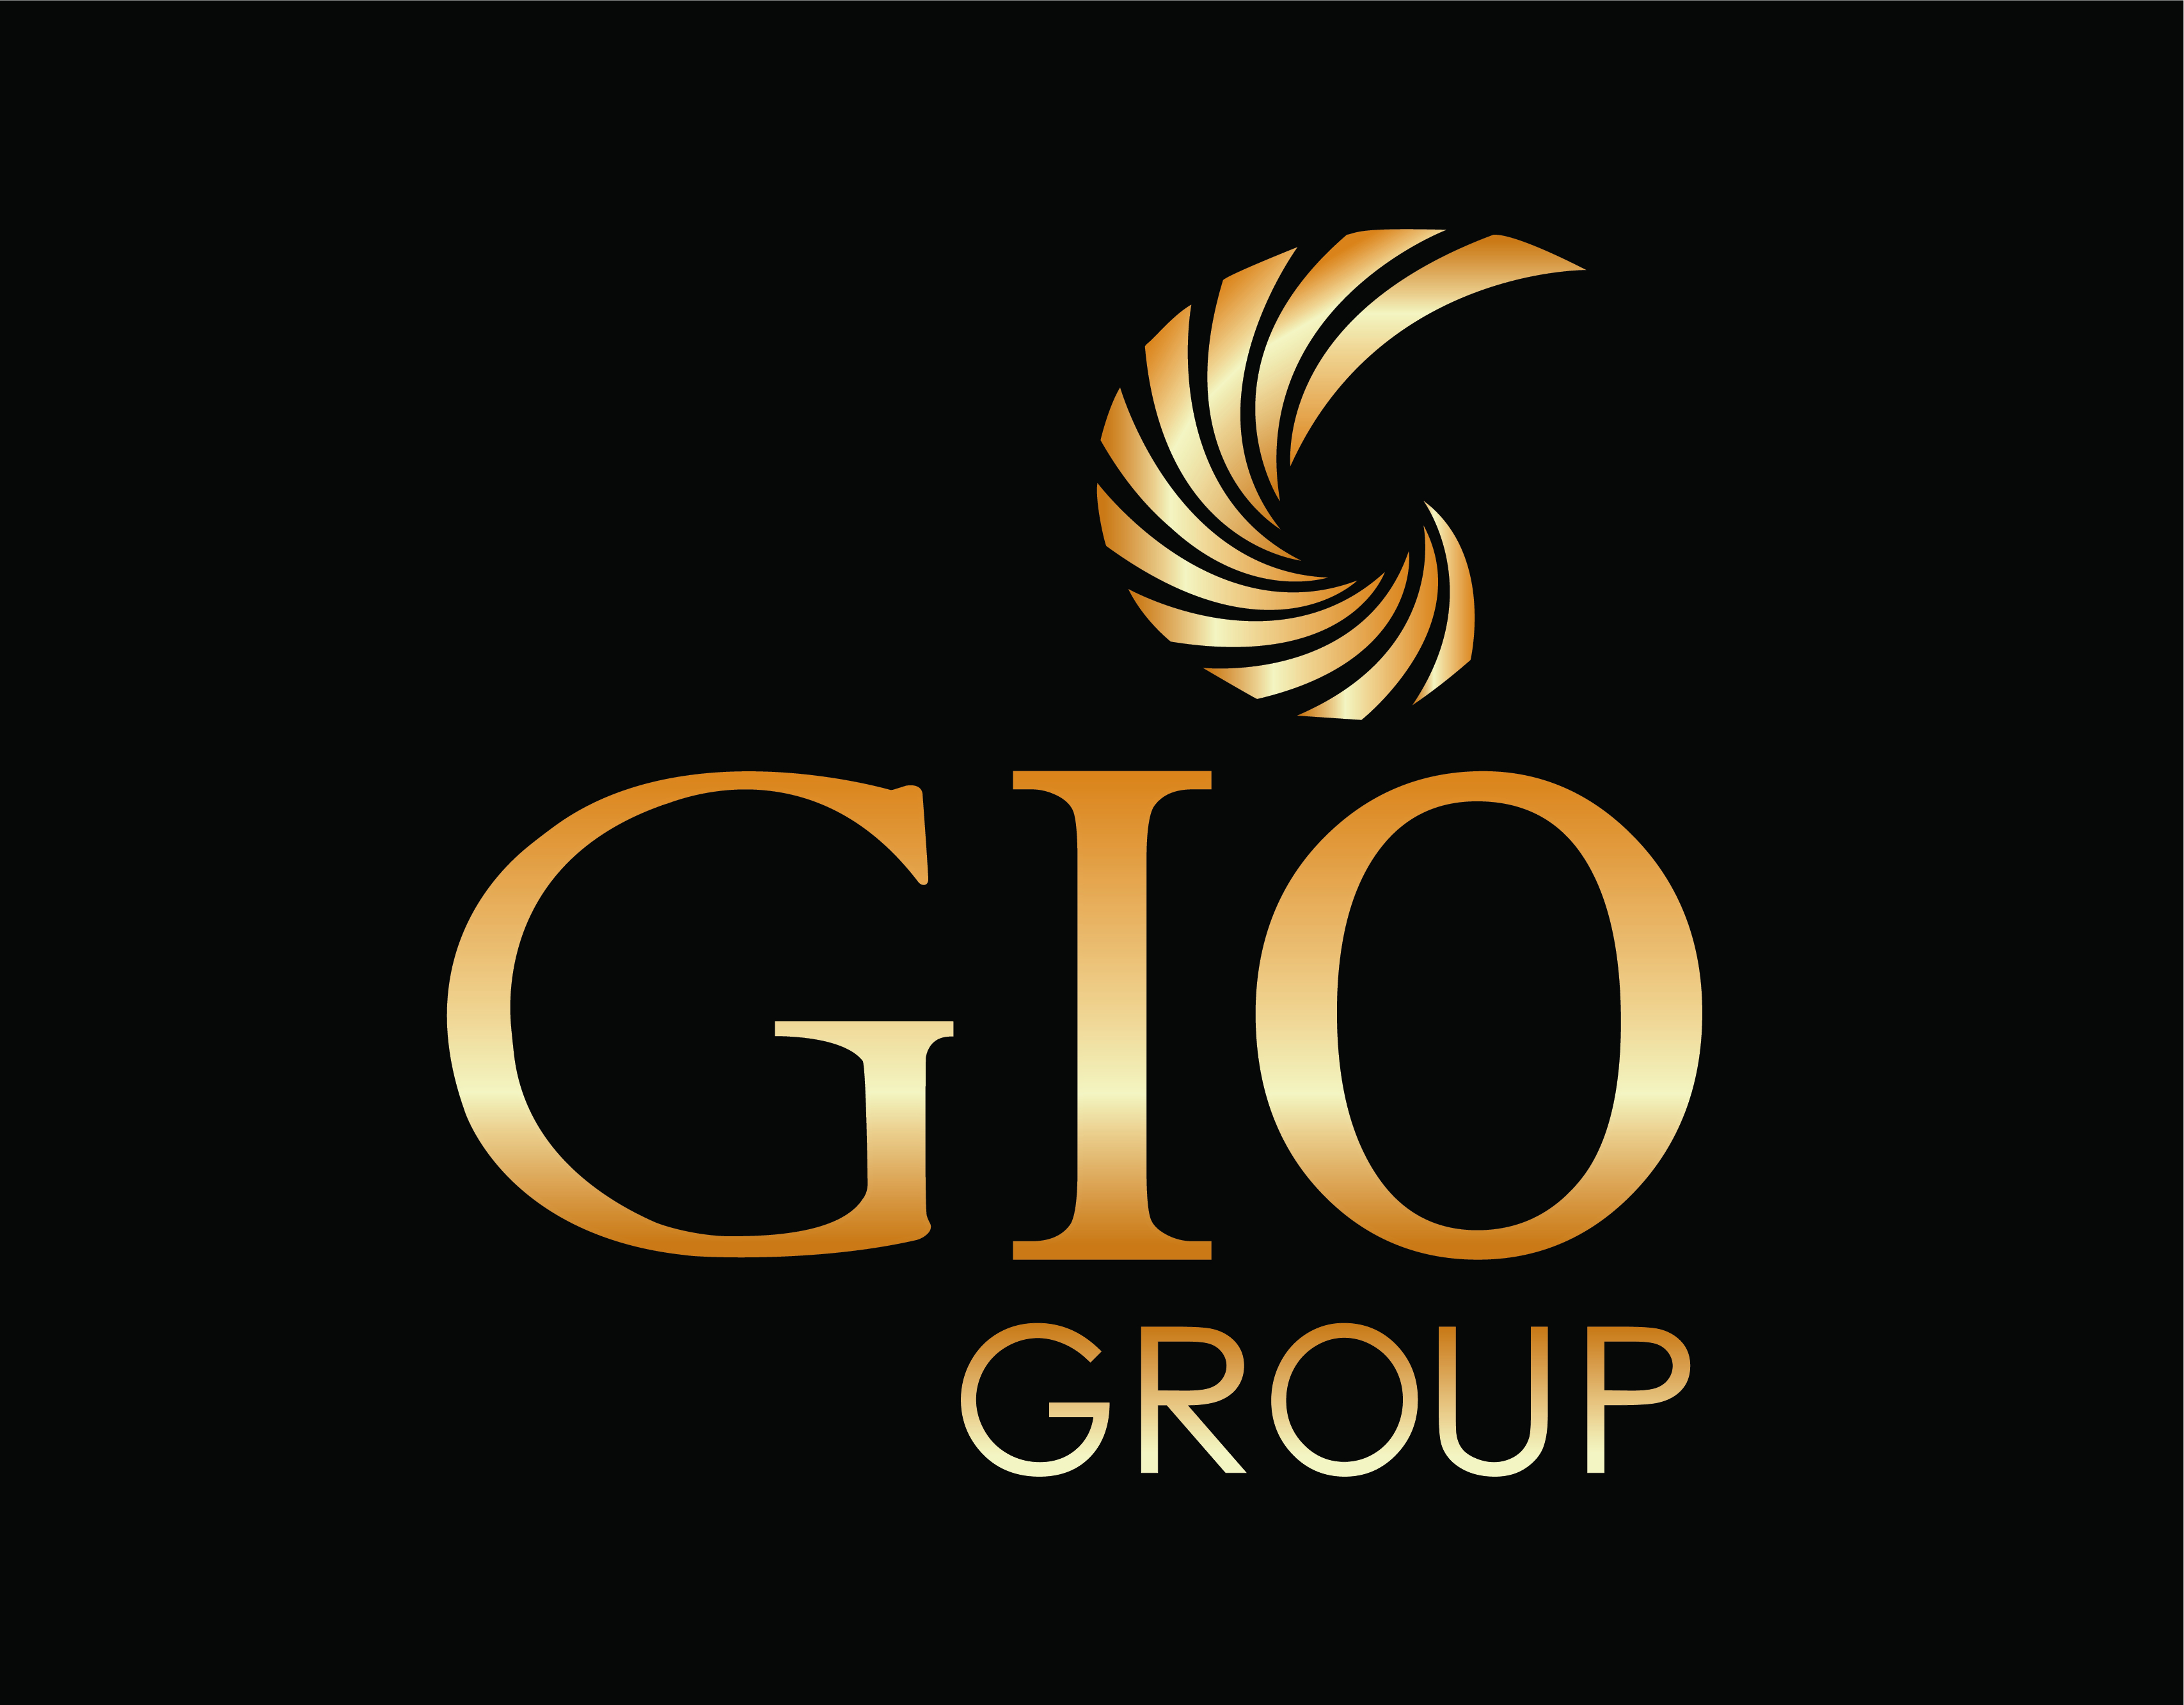 Công ty CP Gio Group